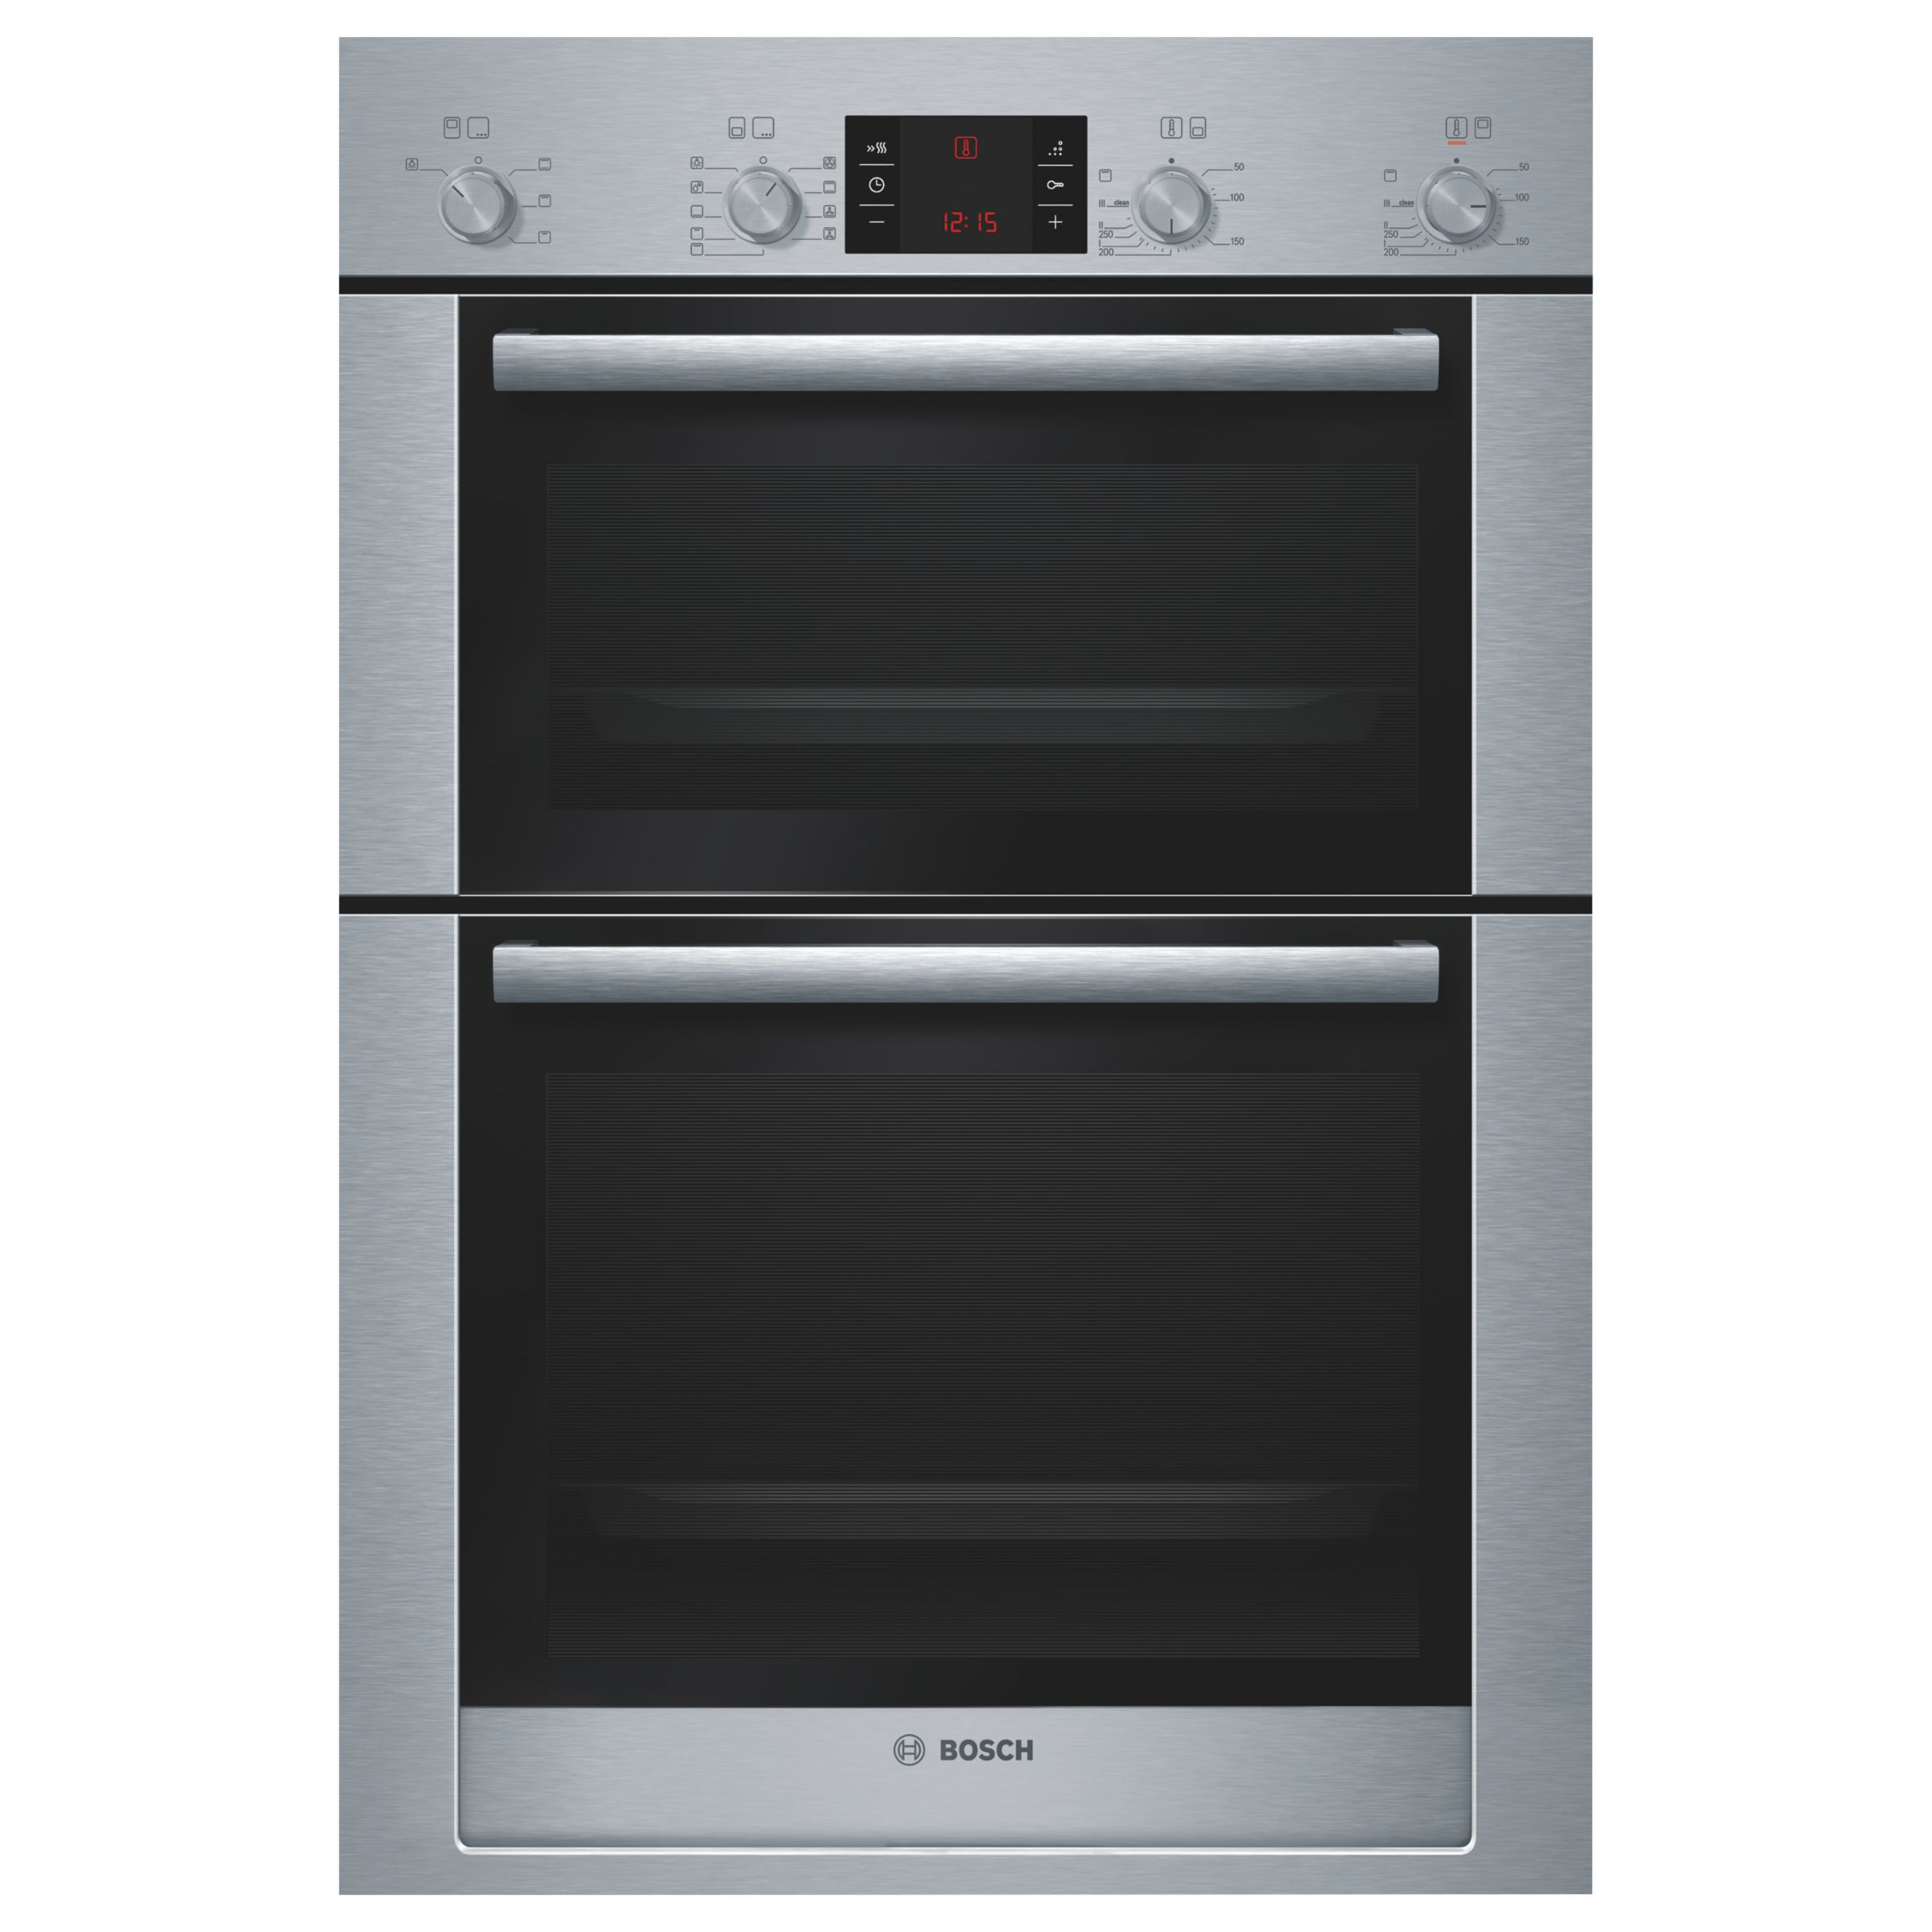 Black oven gloves john lewis - Buy Bosch Exxcel Hbm53r550b Built In Double Electric Oven Stainless Steel Online At Johnlewis